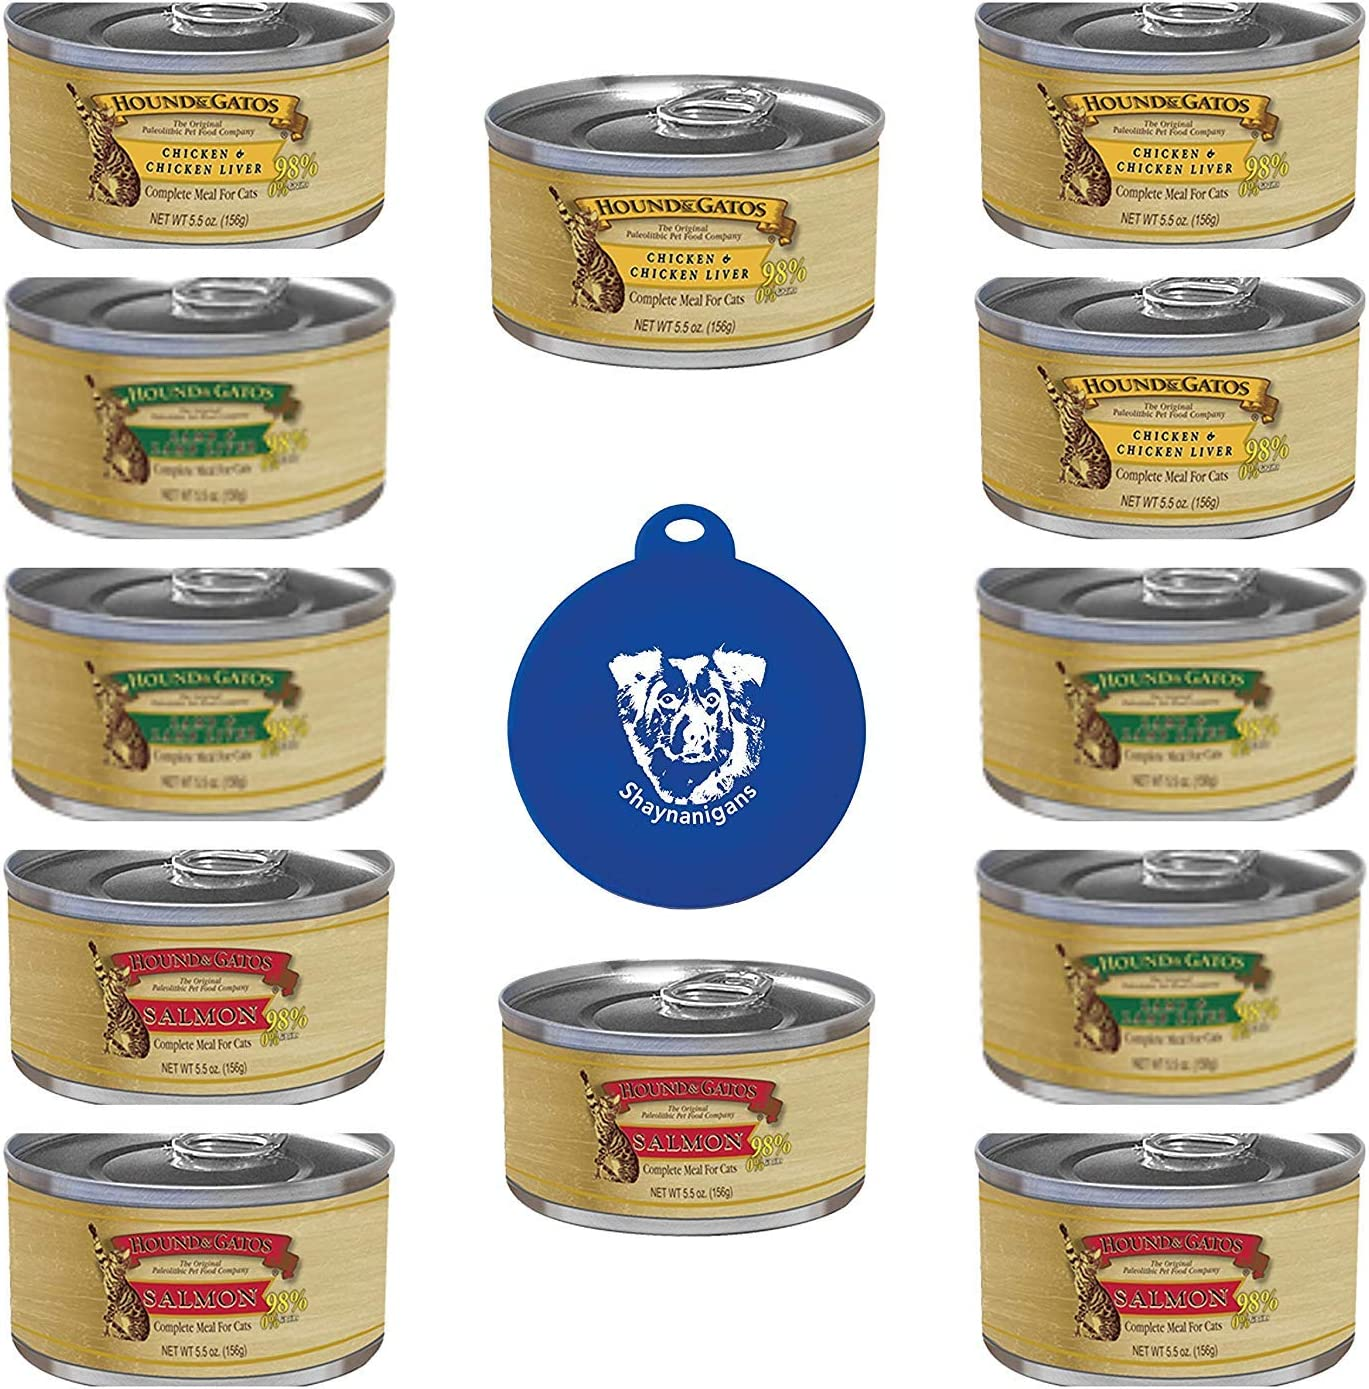 Hound & Gatos Grain Free Canned Cat Food Pate 3 Flavor Variety Bundle: (4) 98% Salmon Recipe, (4) 98% Lamb Recipe, and (4) 98% Chicken Recipe (12 Cans Total, 5.5 Ounces Each) Plus Silicone Lid